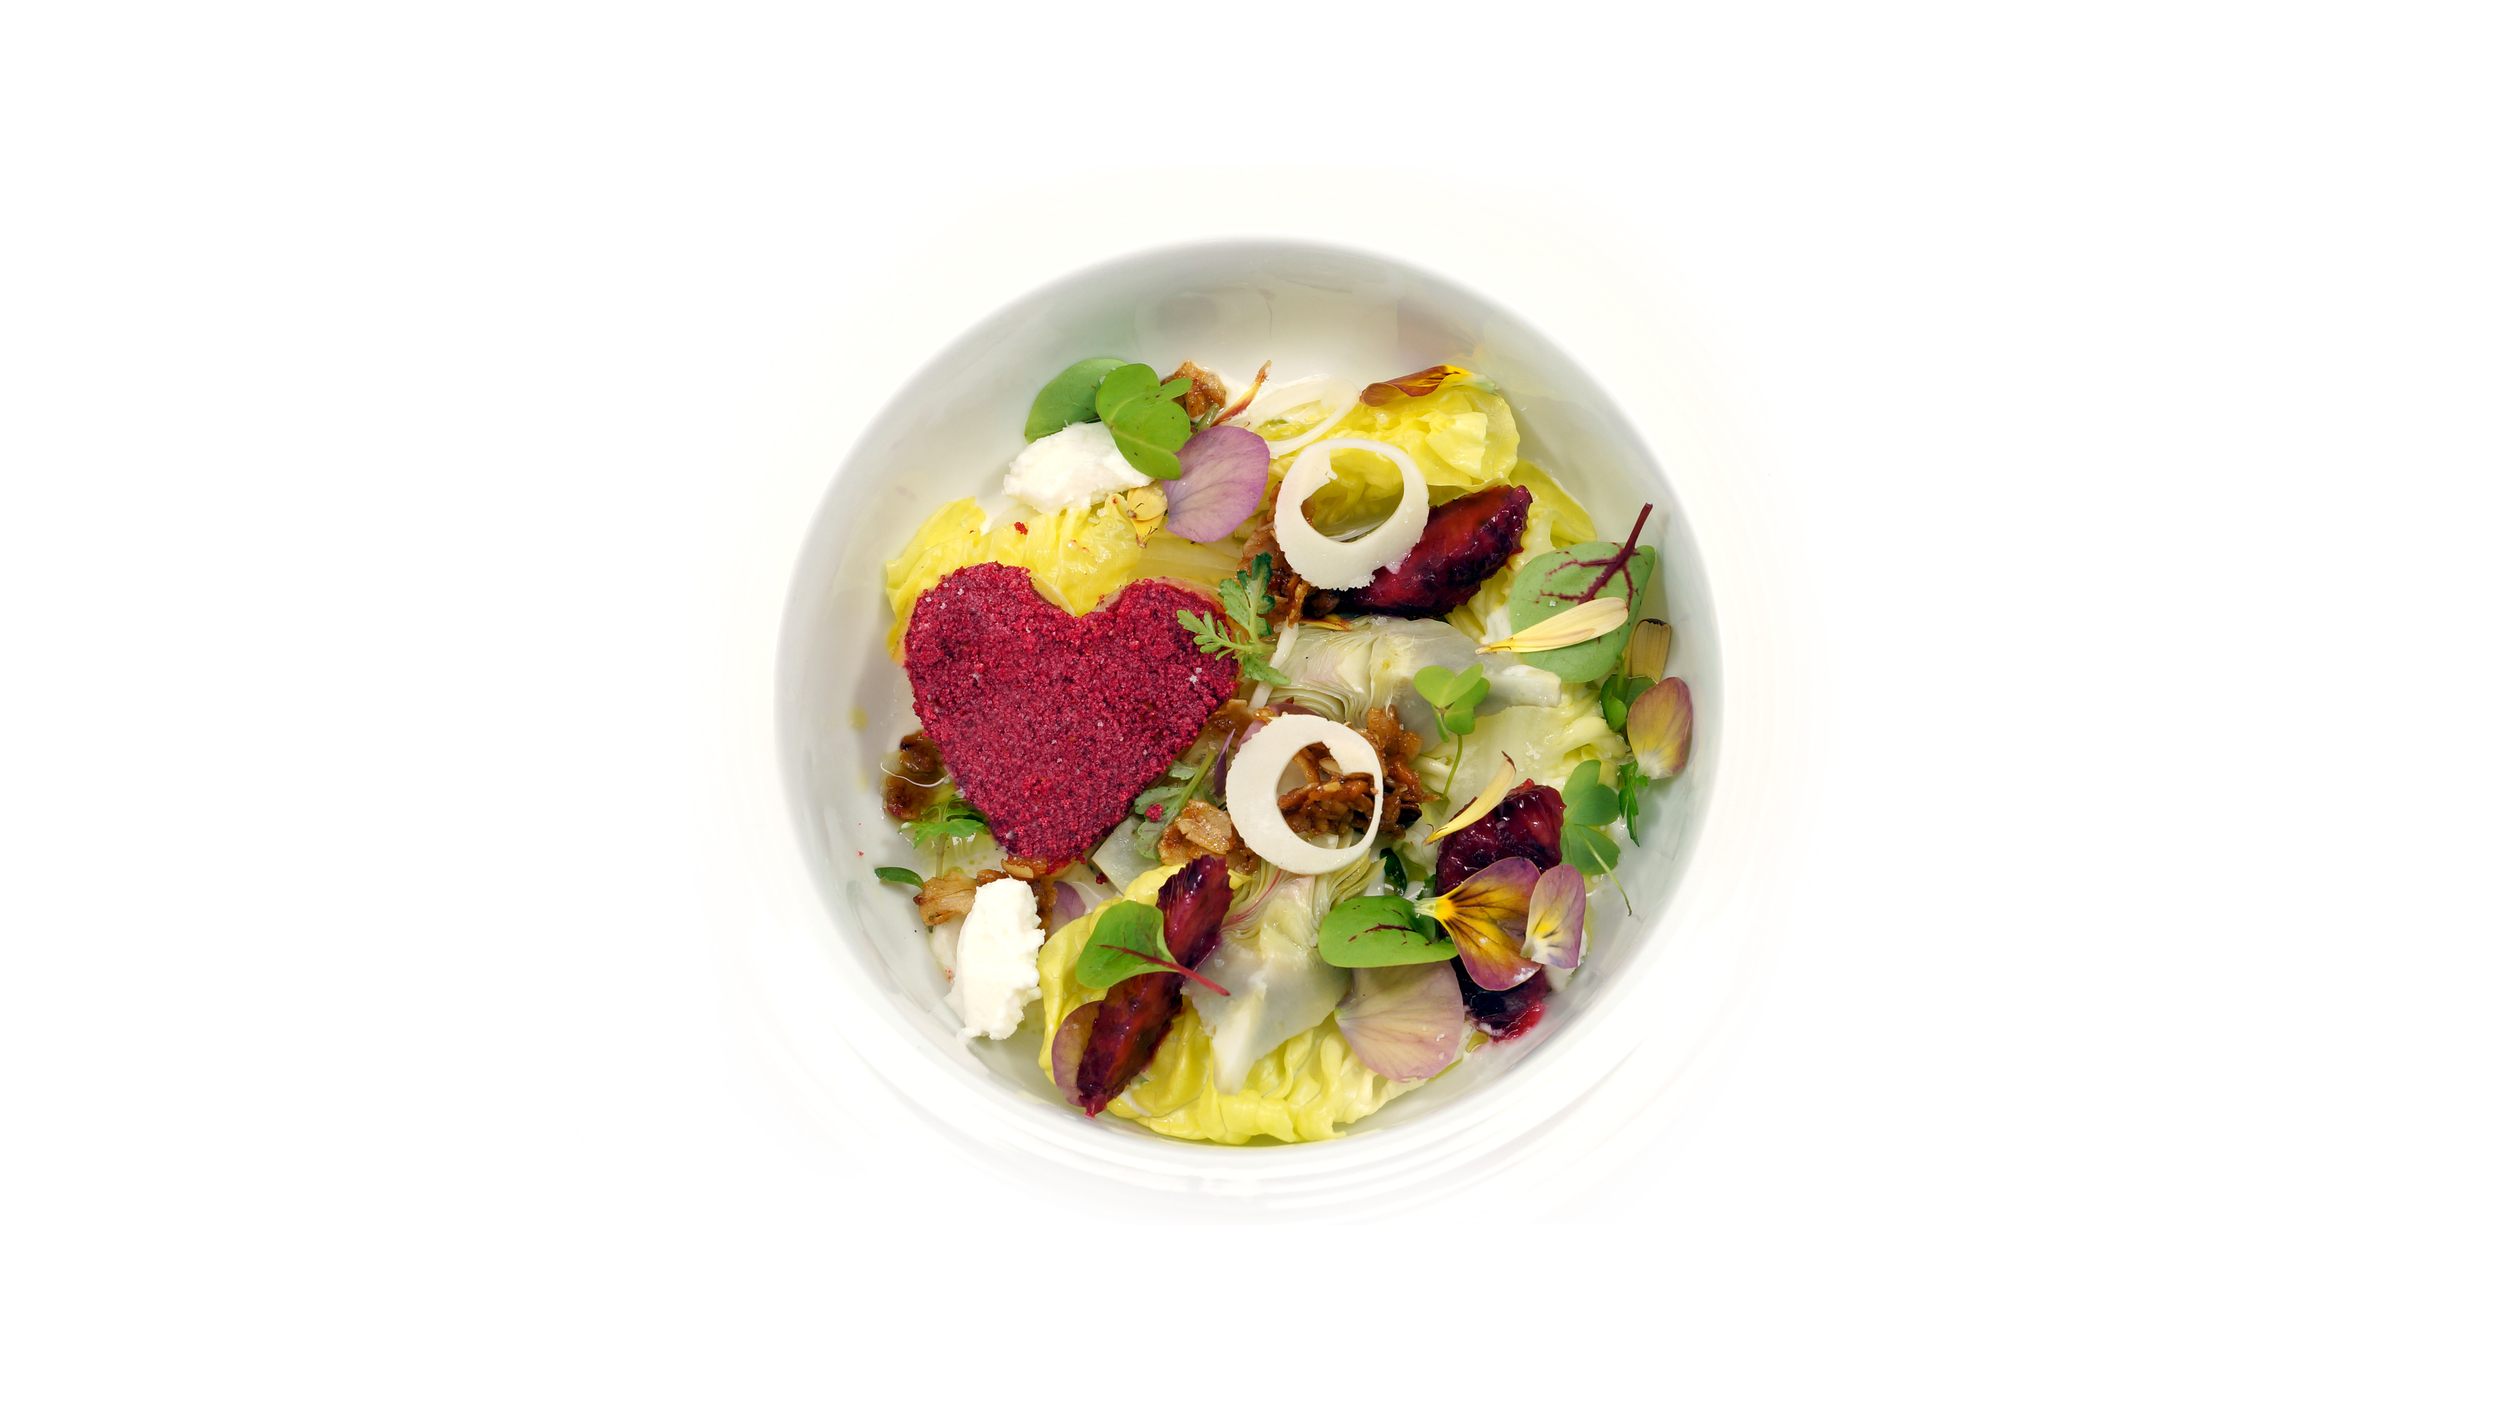 i ♥ salad |   cranberry dusted rhutabaga - hearts of palm - artichoke hearts - lettuce hearts - hearts on fire